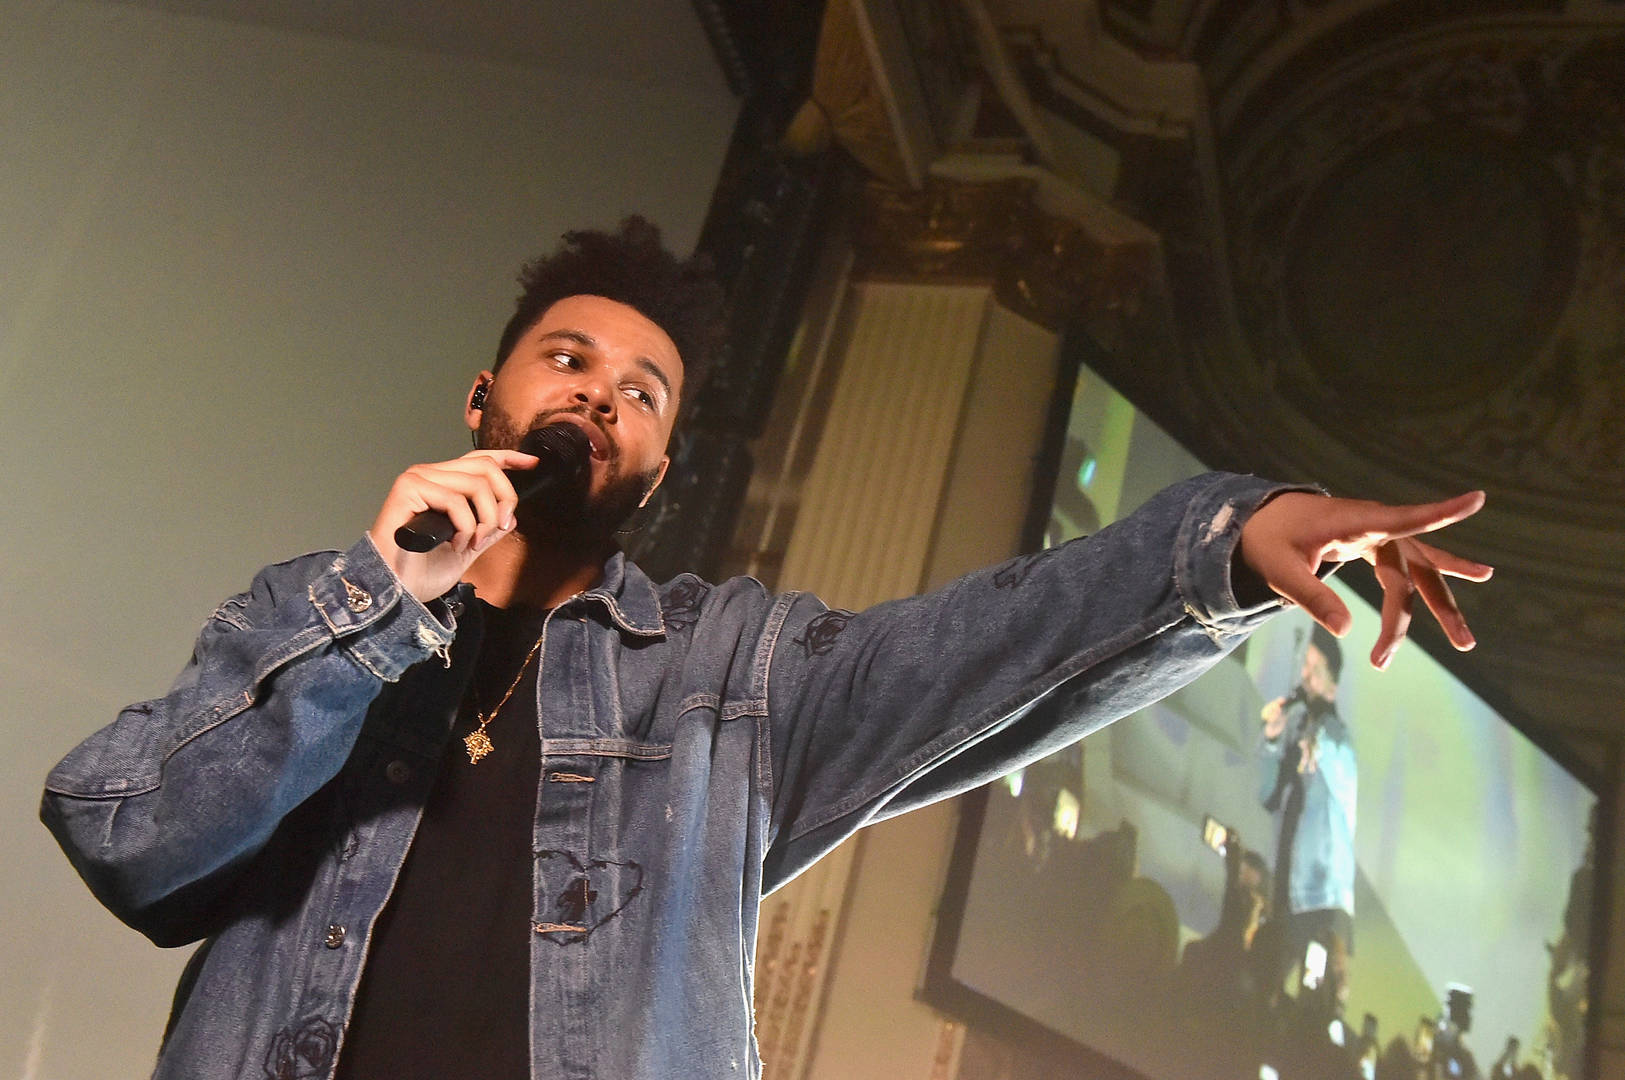 The Weeknd's Shocking Postmates Order History Revealed